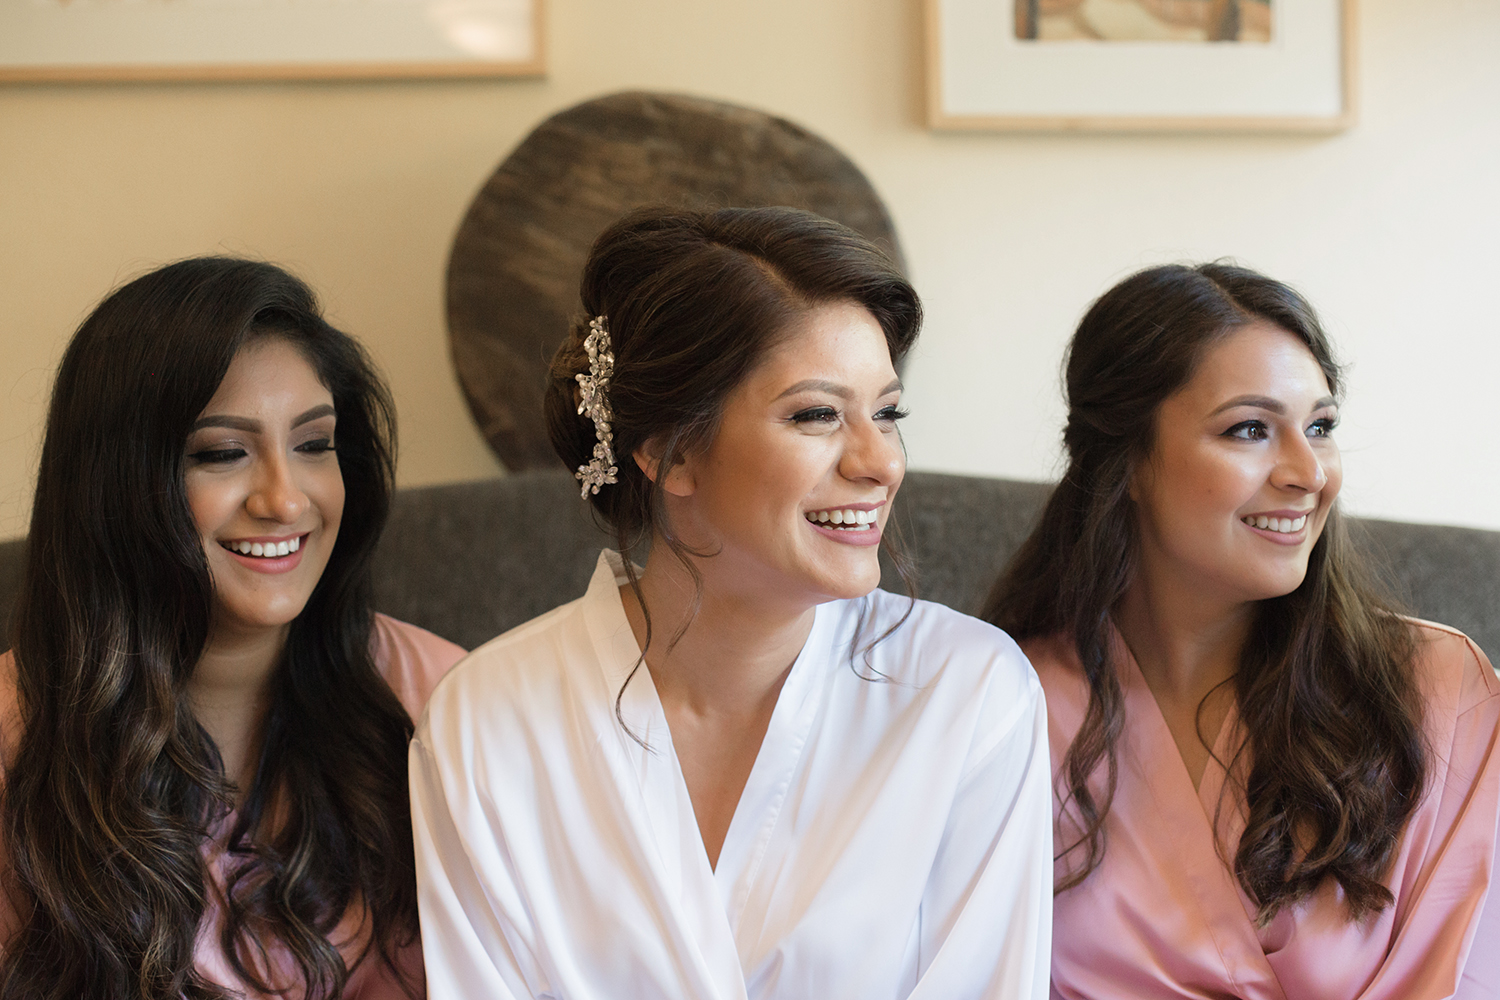 A bride laughing with her bridesmaids before putting her wedding dress on.